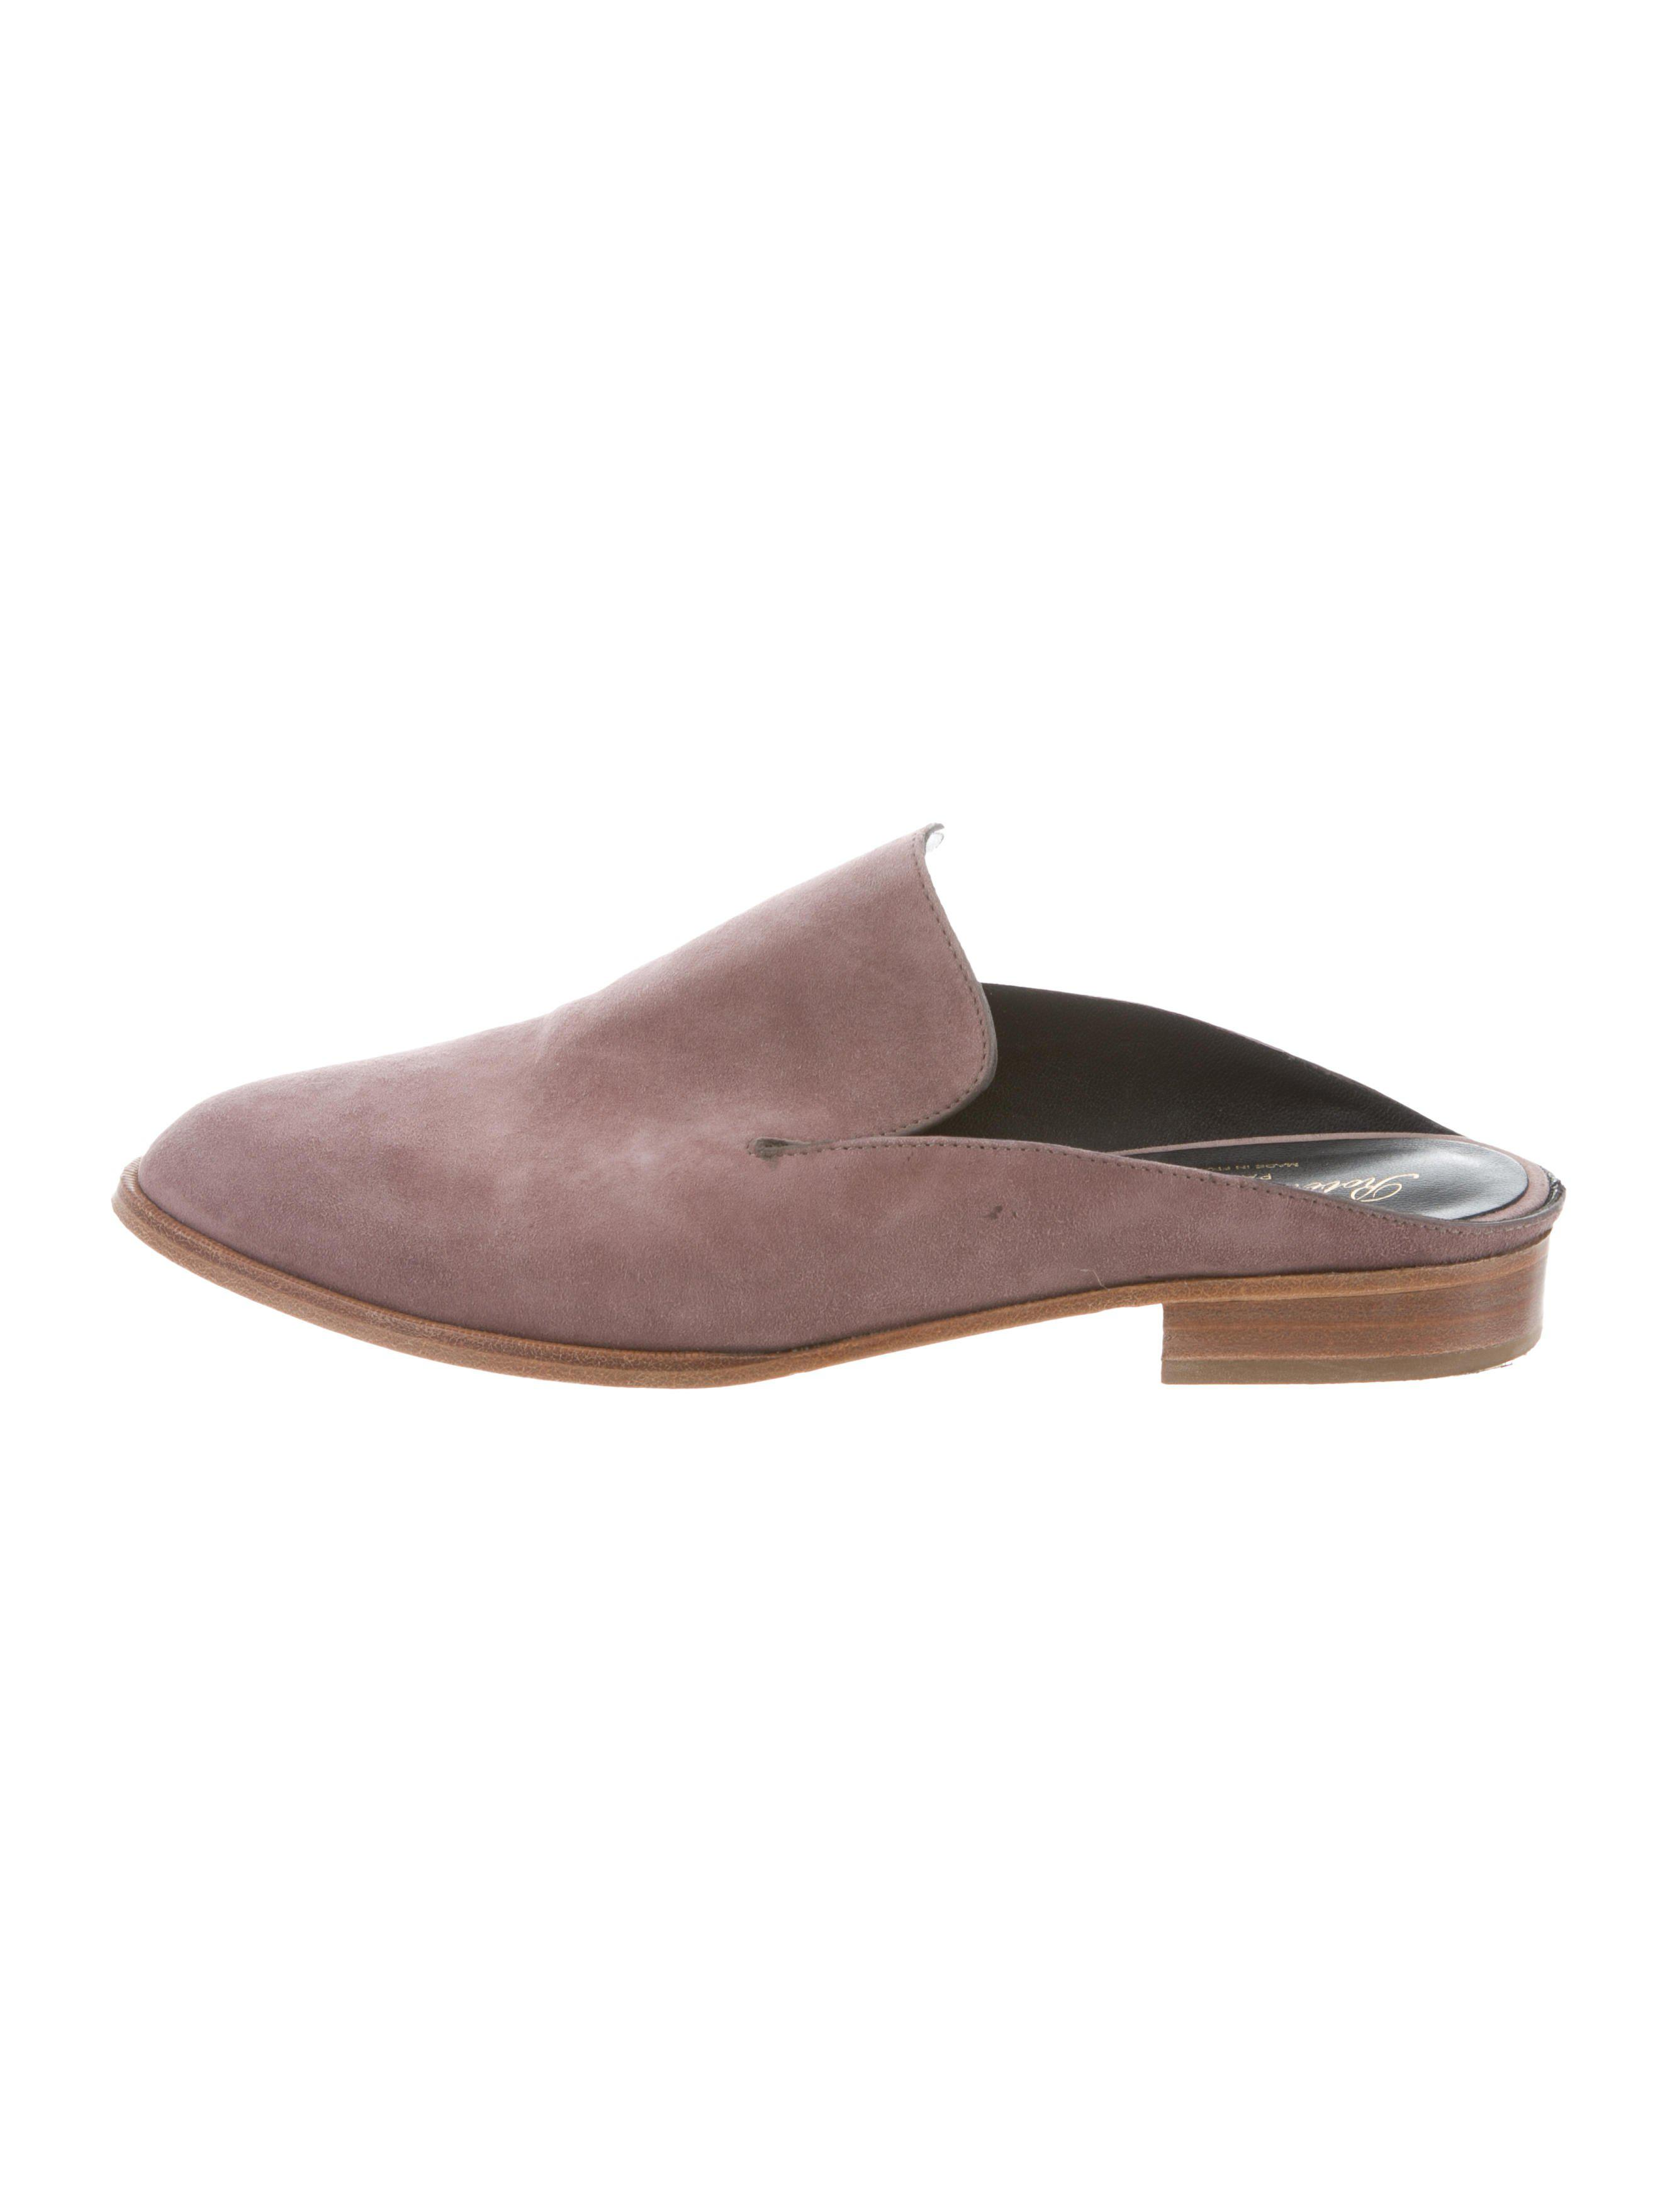 Robert Clergerie Clergerie Paris Suede Pointed-Toe Mules fashionable online shHB54xof